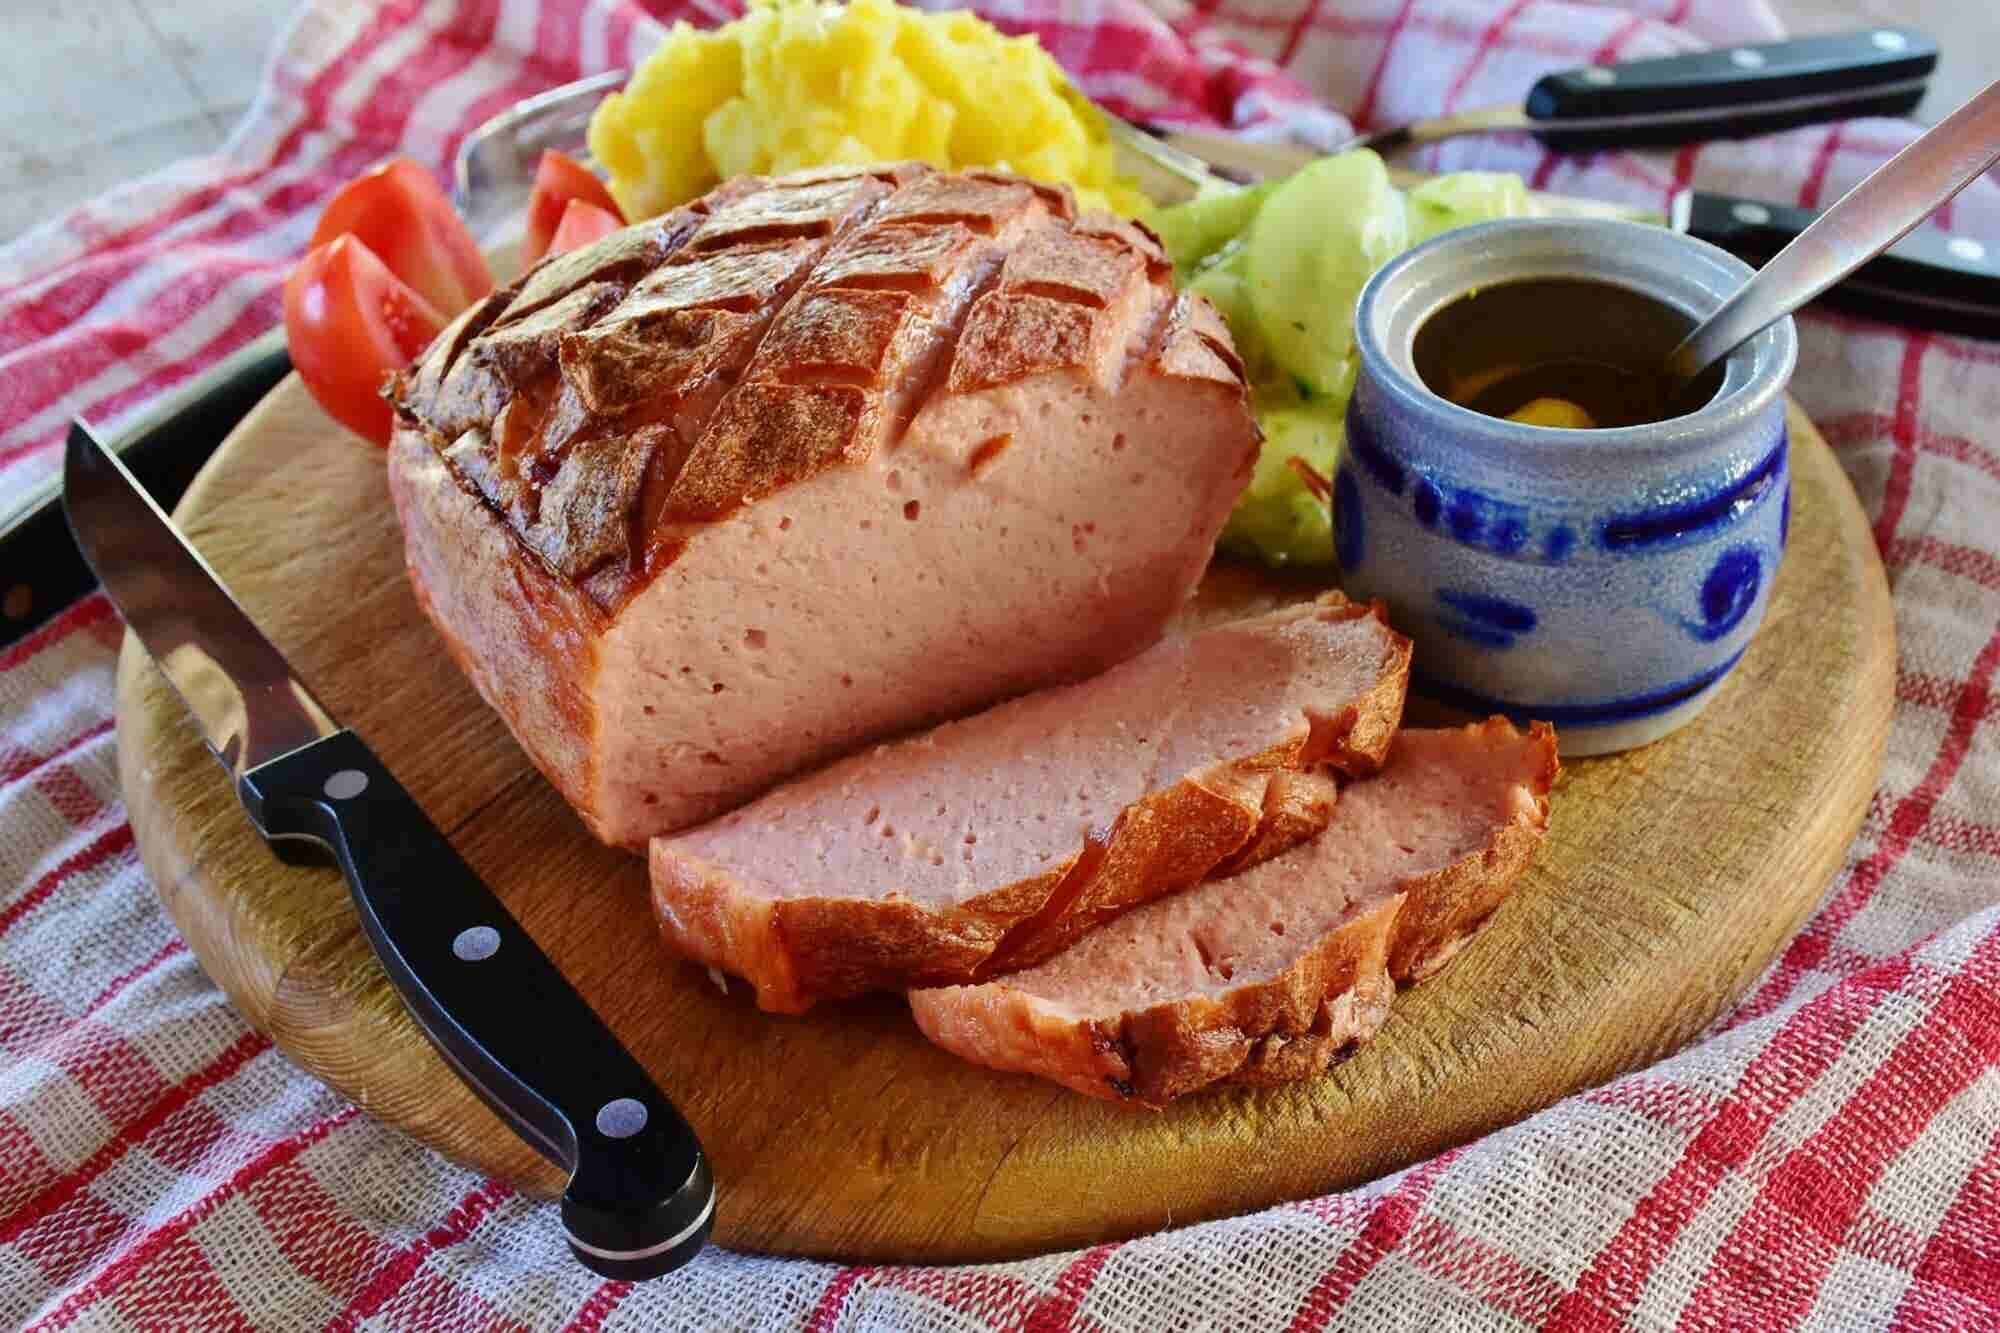 Top Trends in Cold Cuts and Deli Meats